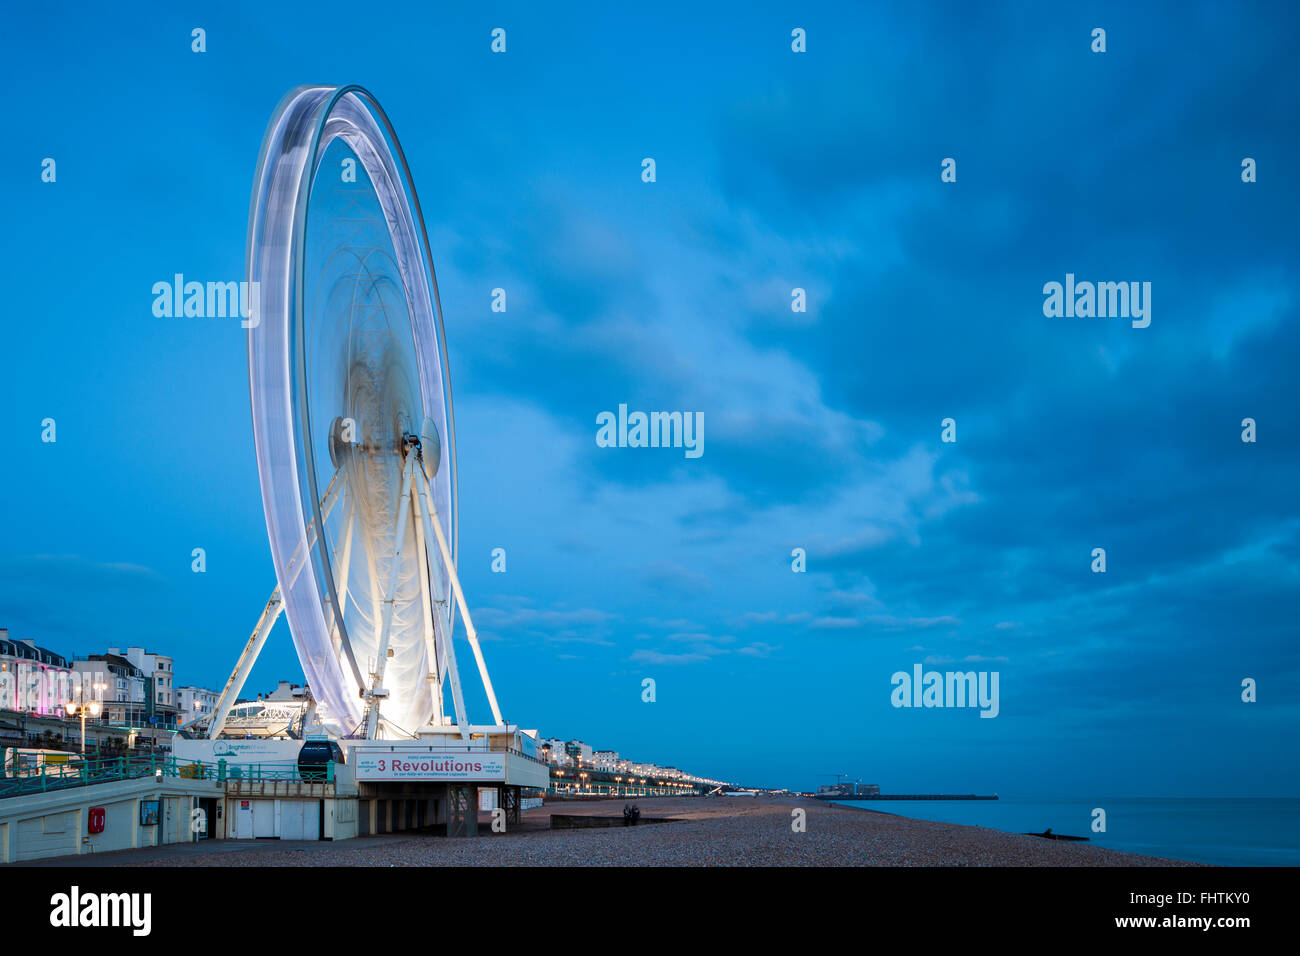 Evening at Brighton Wheel, East Sussex, England. - Stock Image